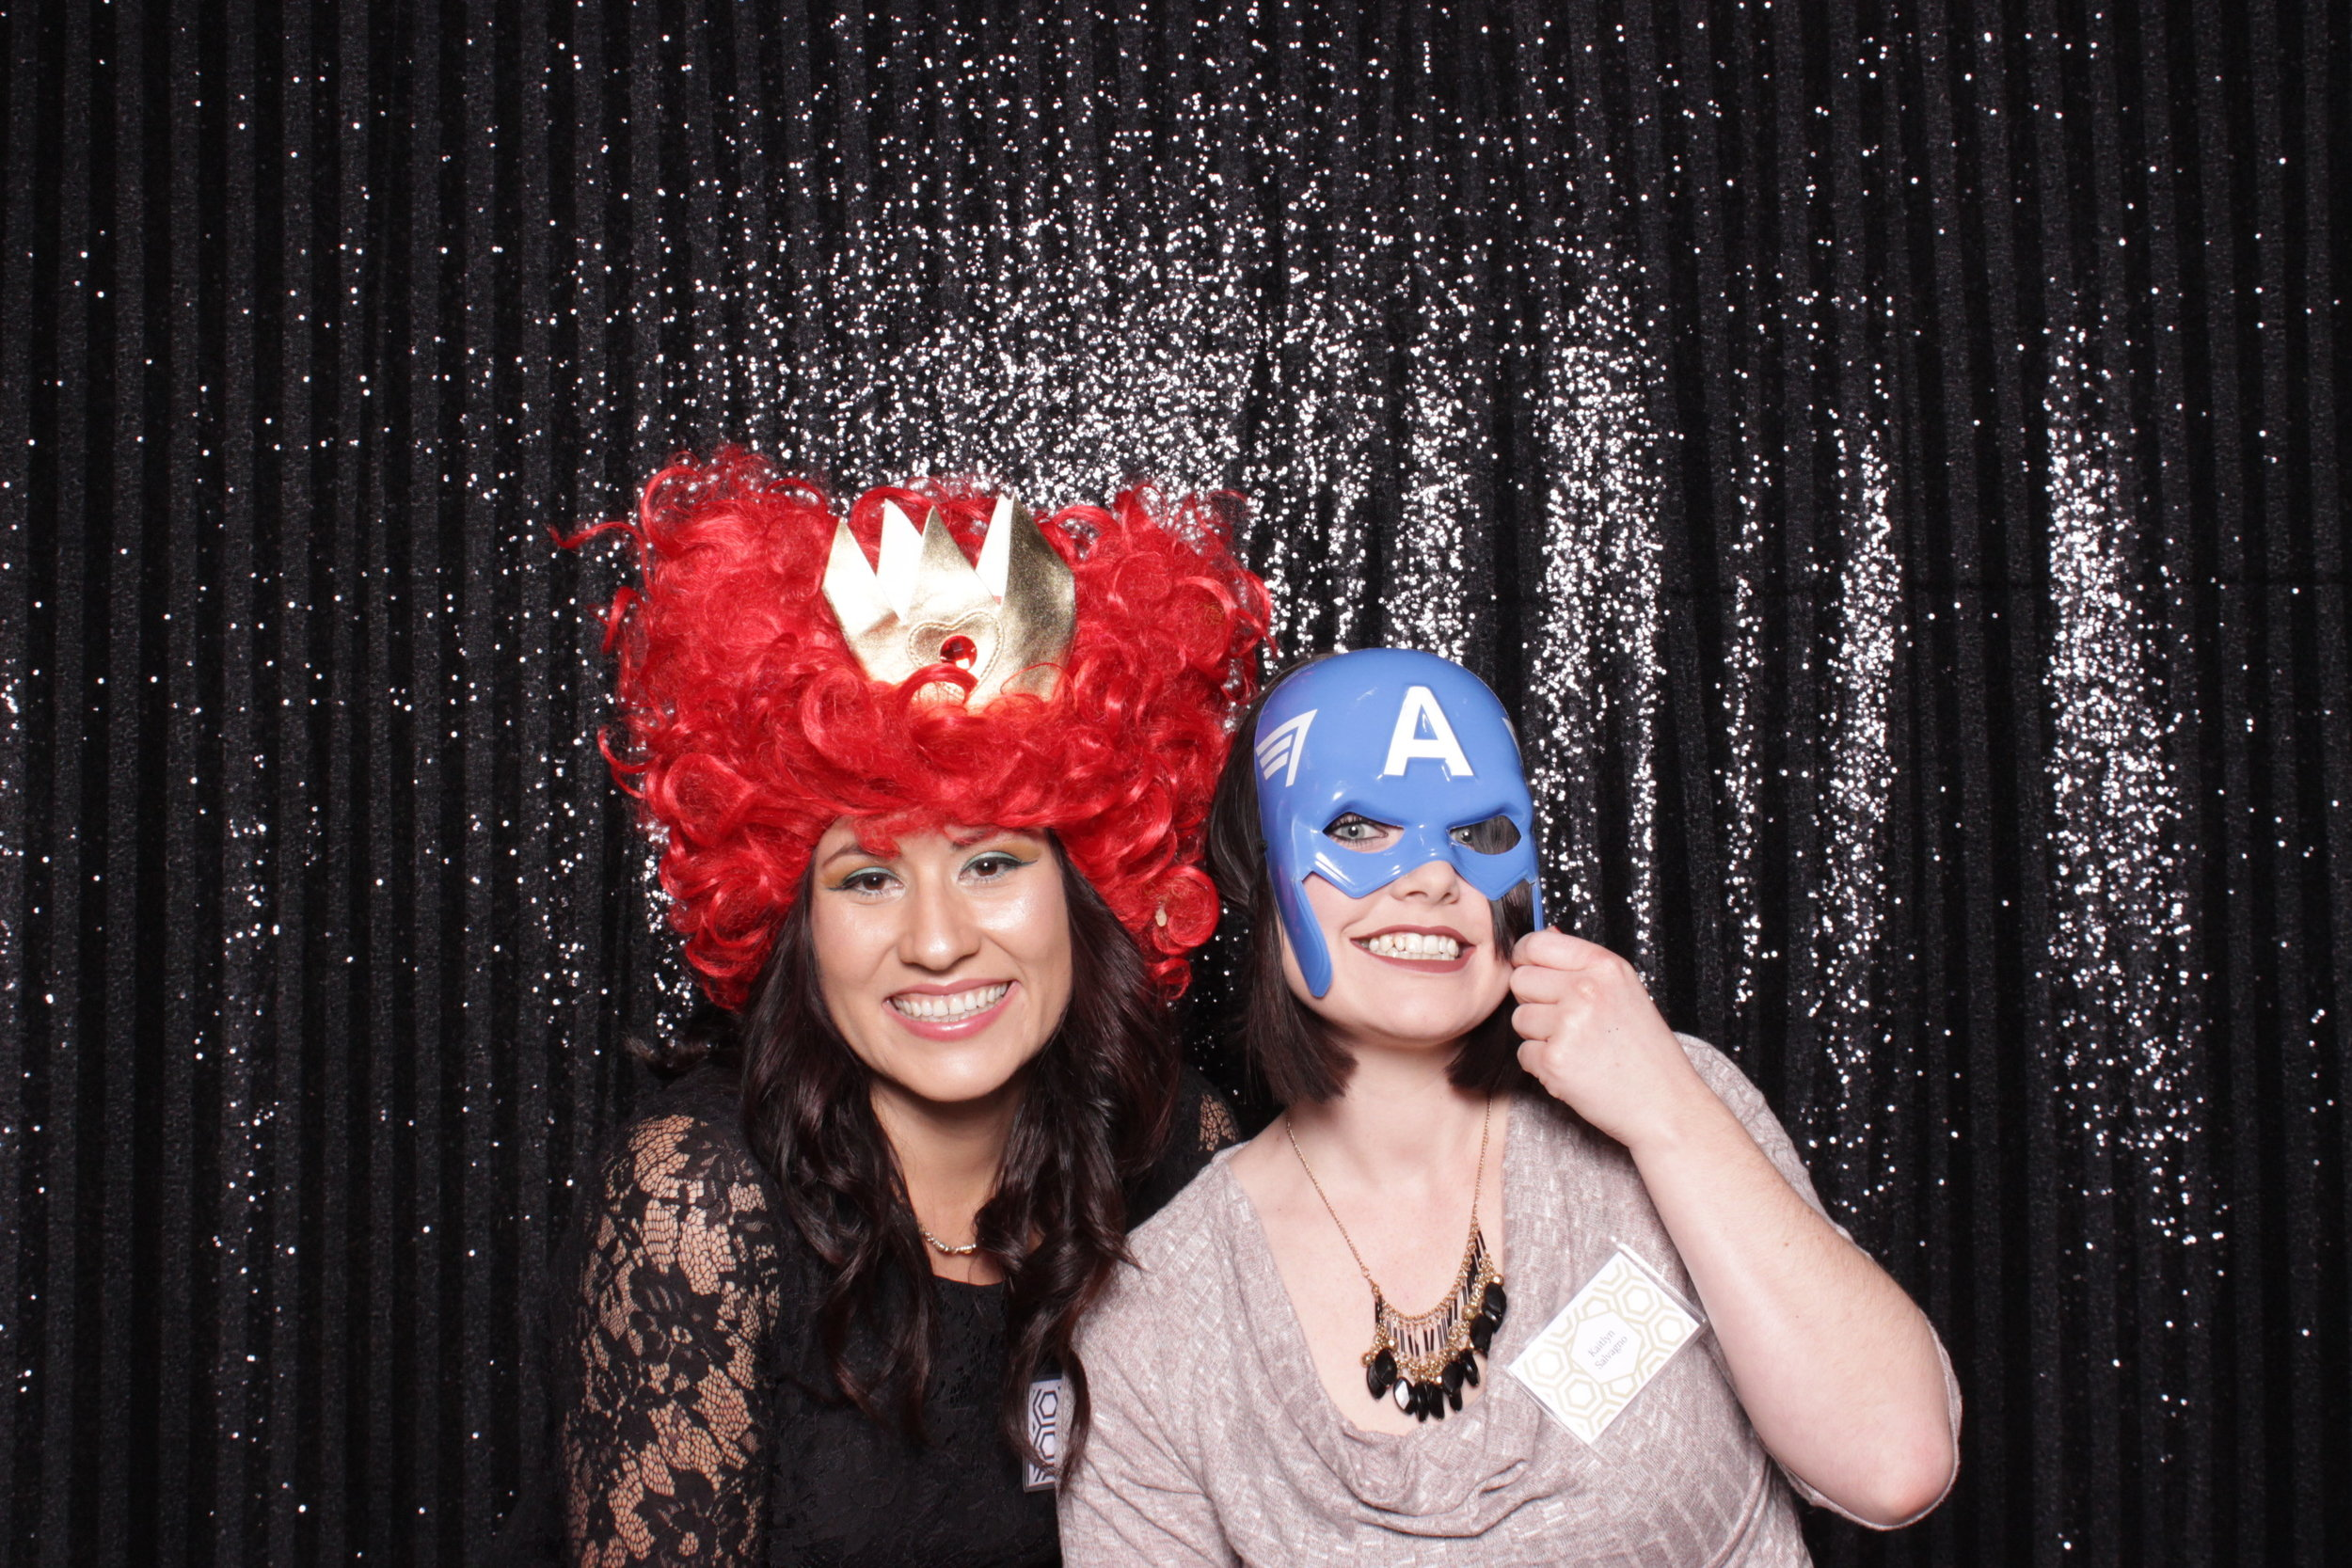 Chico-photo-booth-rental-simple-to-operate